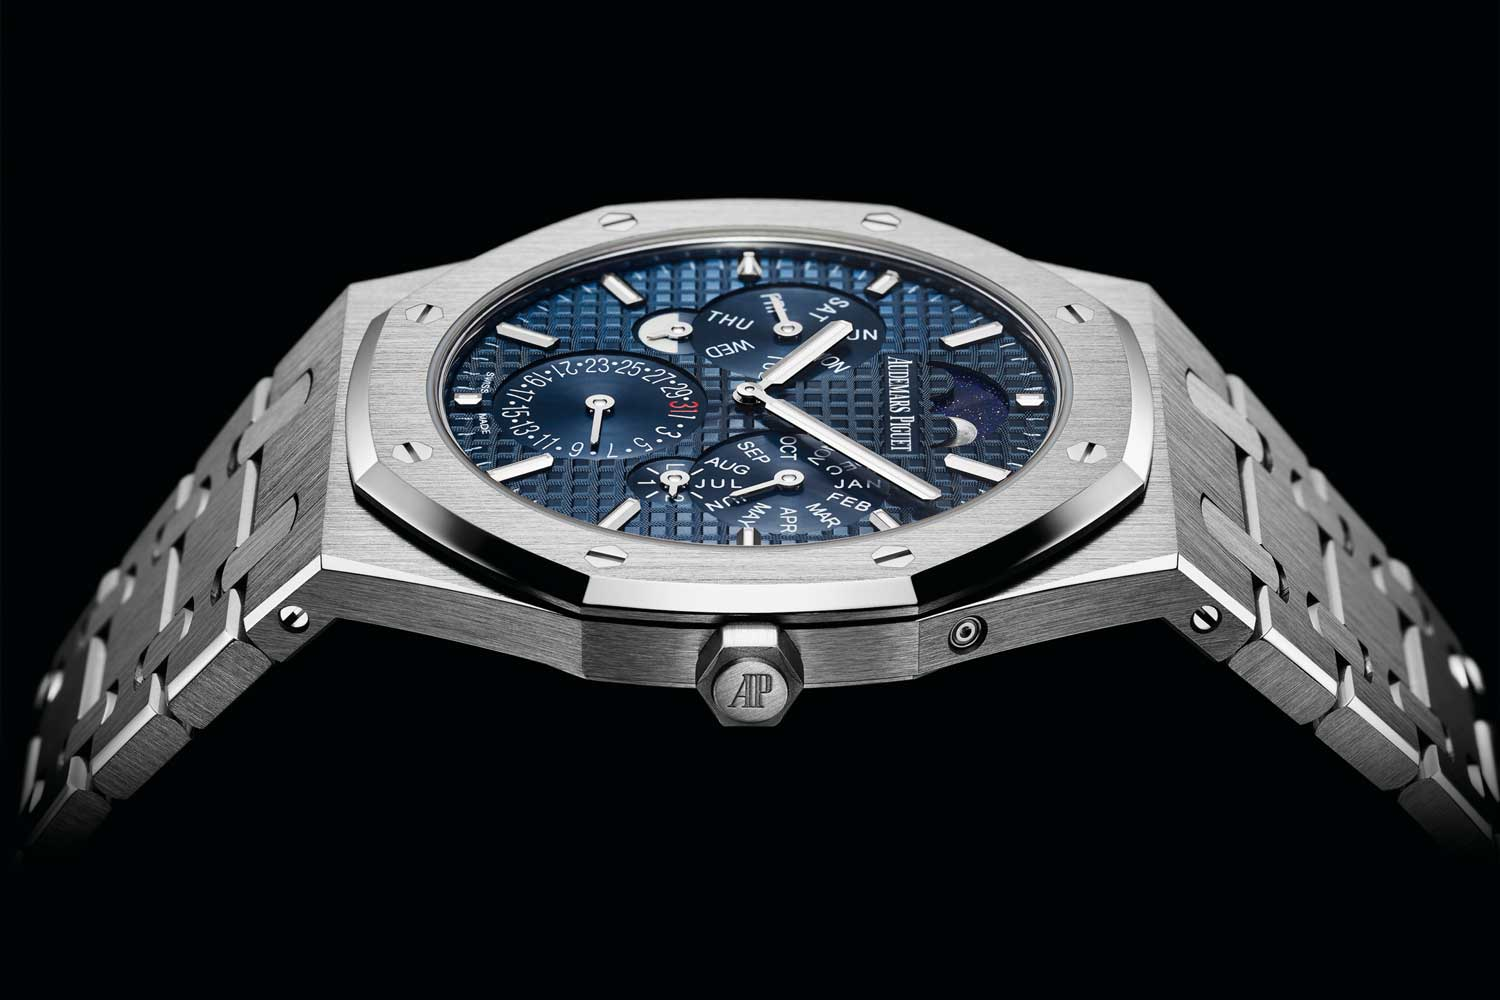 Audemars Piguet Royal Oak RD#2 Perpetual Calendar Ultra Thin sihh 2018